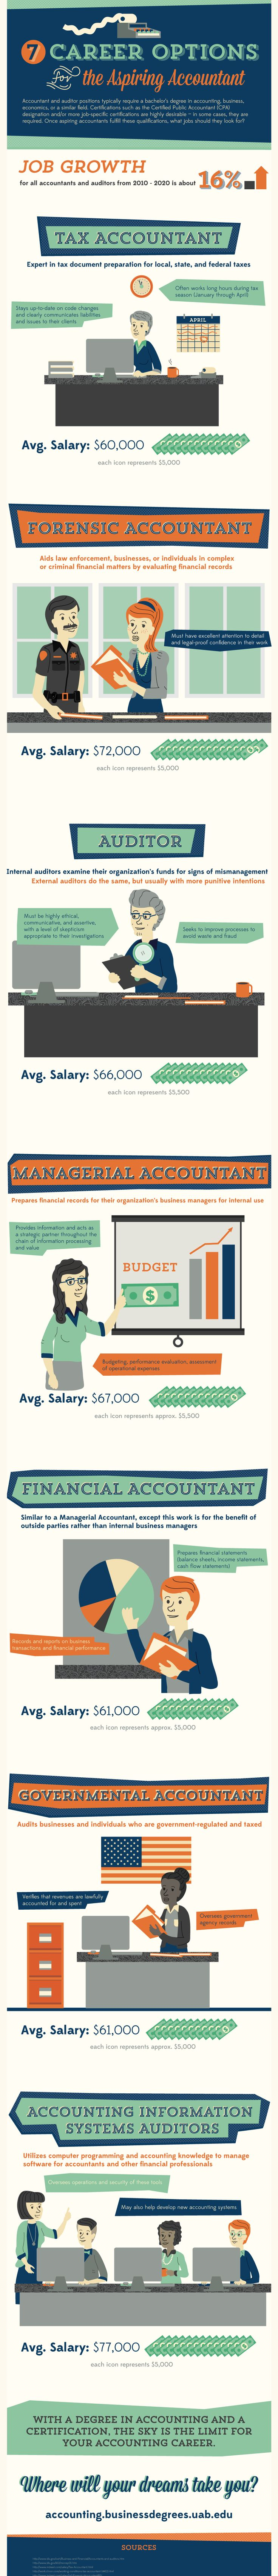 7 career options for the aspiring accountant